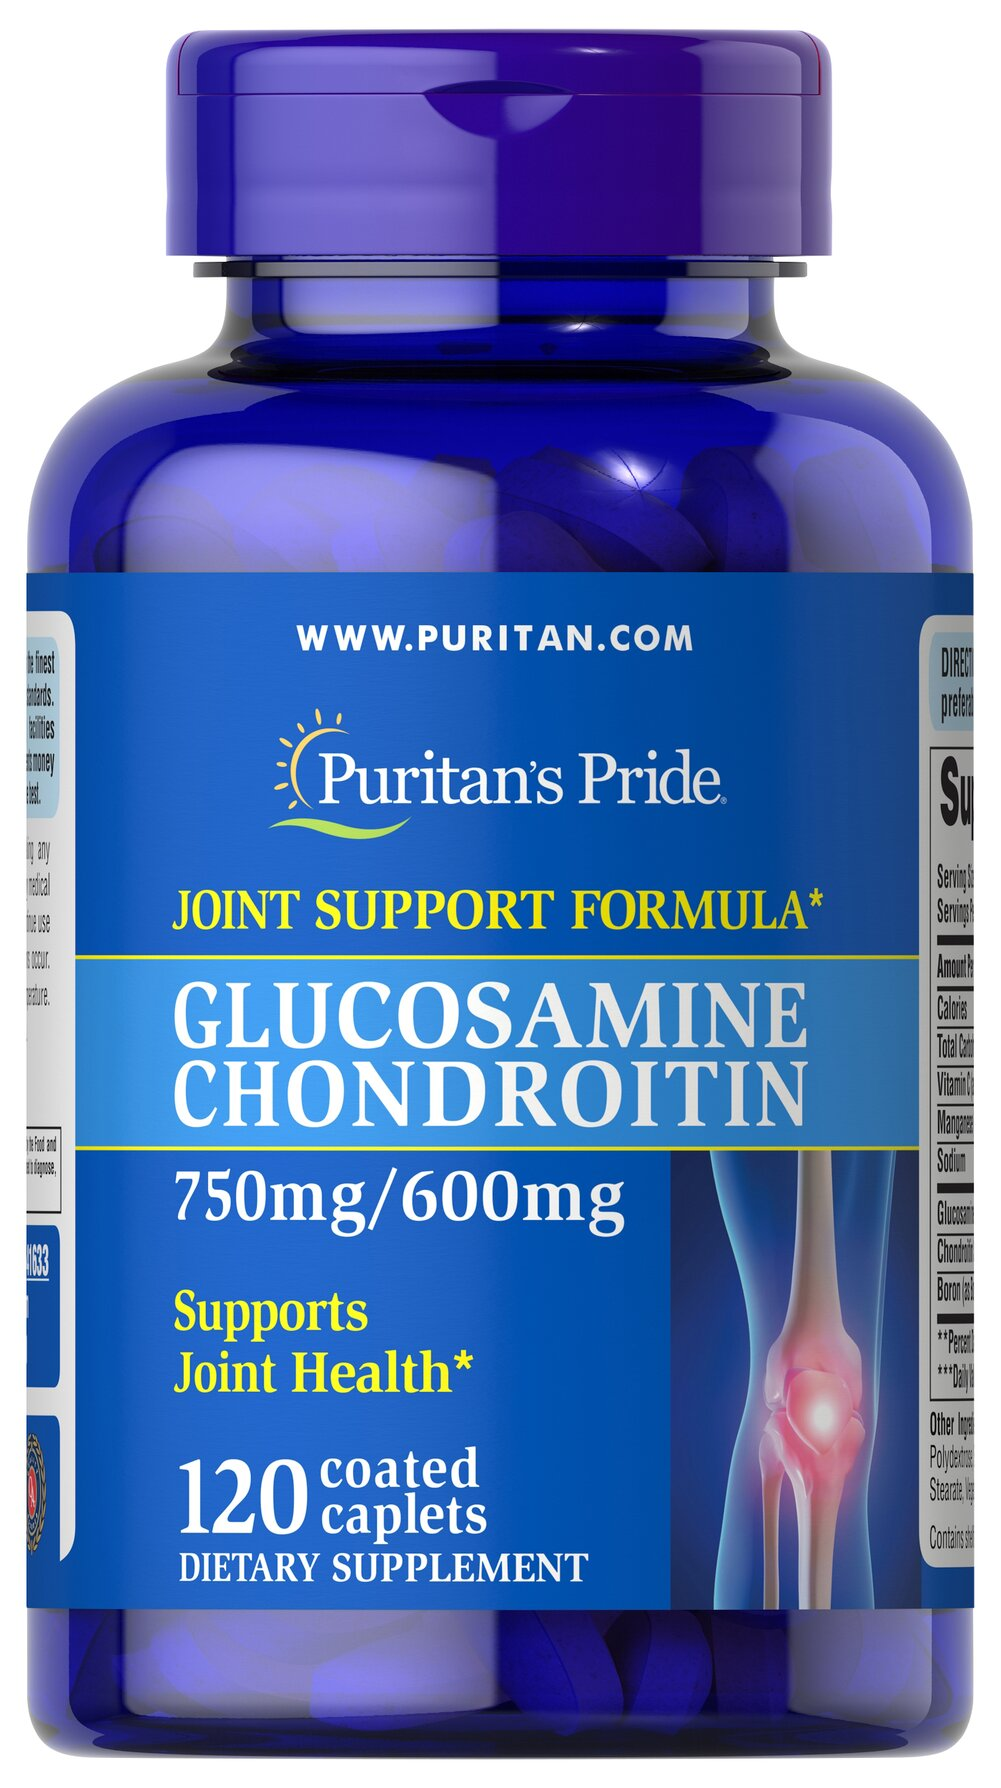 Triple Strength Glucosamine Chondroitin 750 mg/600 mg  120 Caplets 750 mg/600 mg $53.99